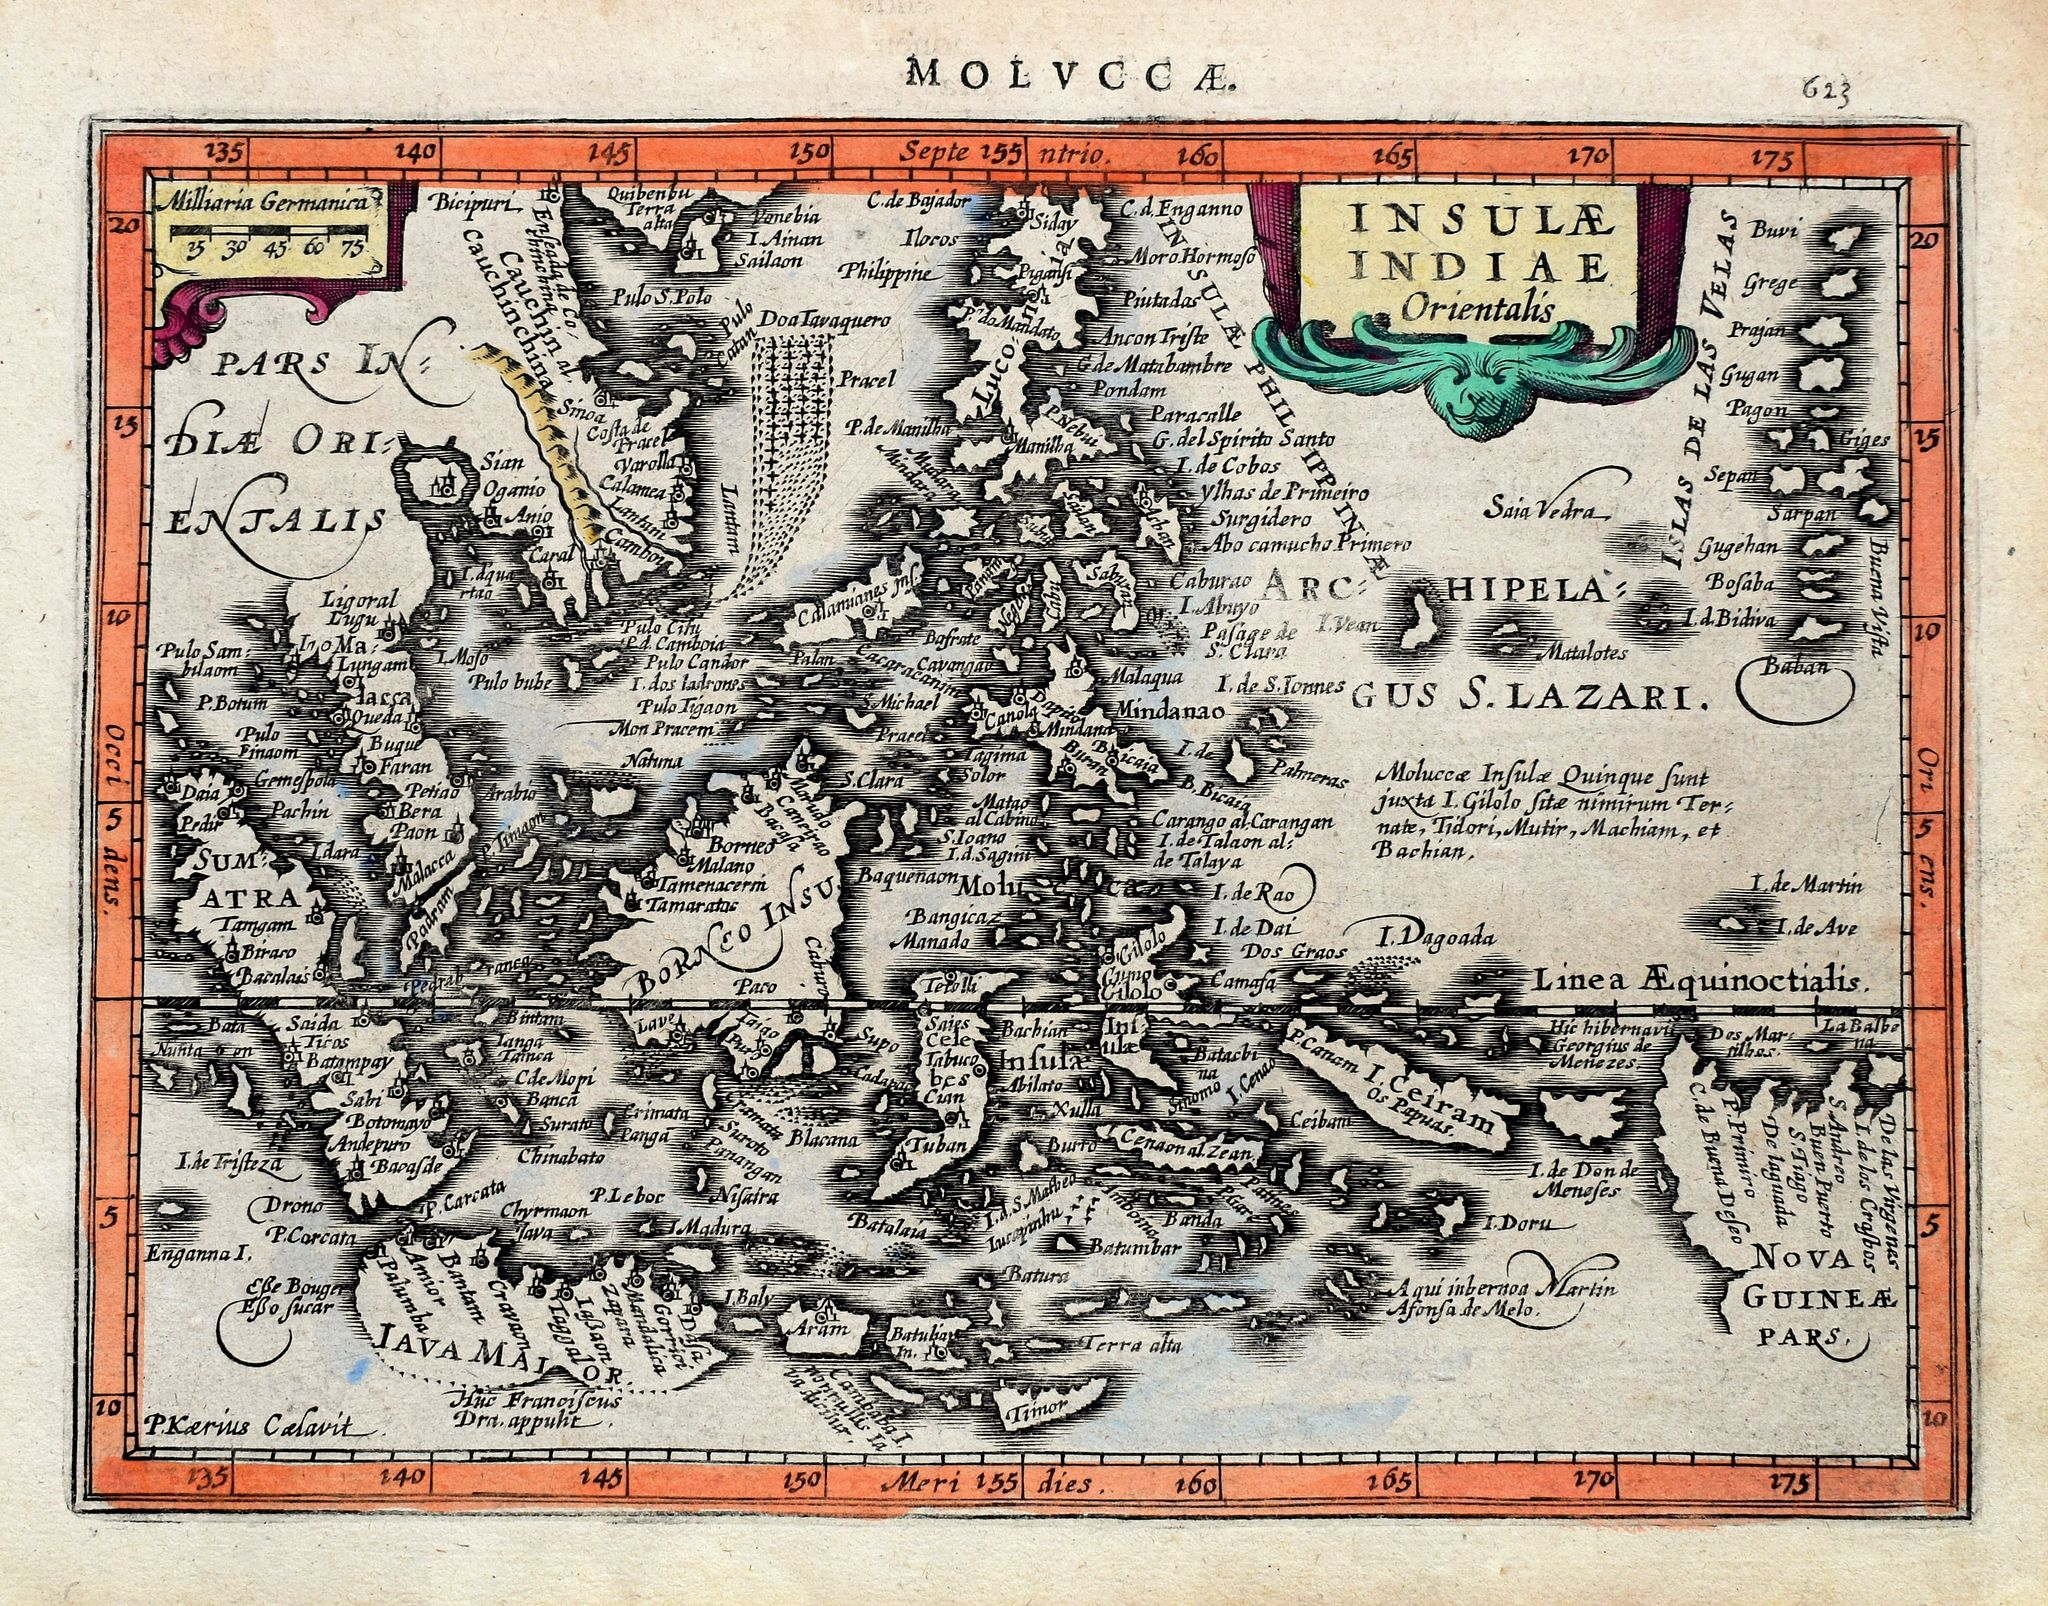 KAERIUS, P., Insulae Indiae Orientalis., antique map, old maps